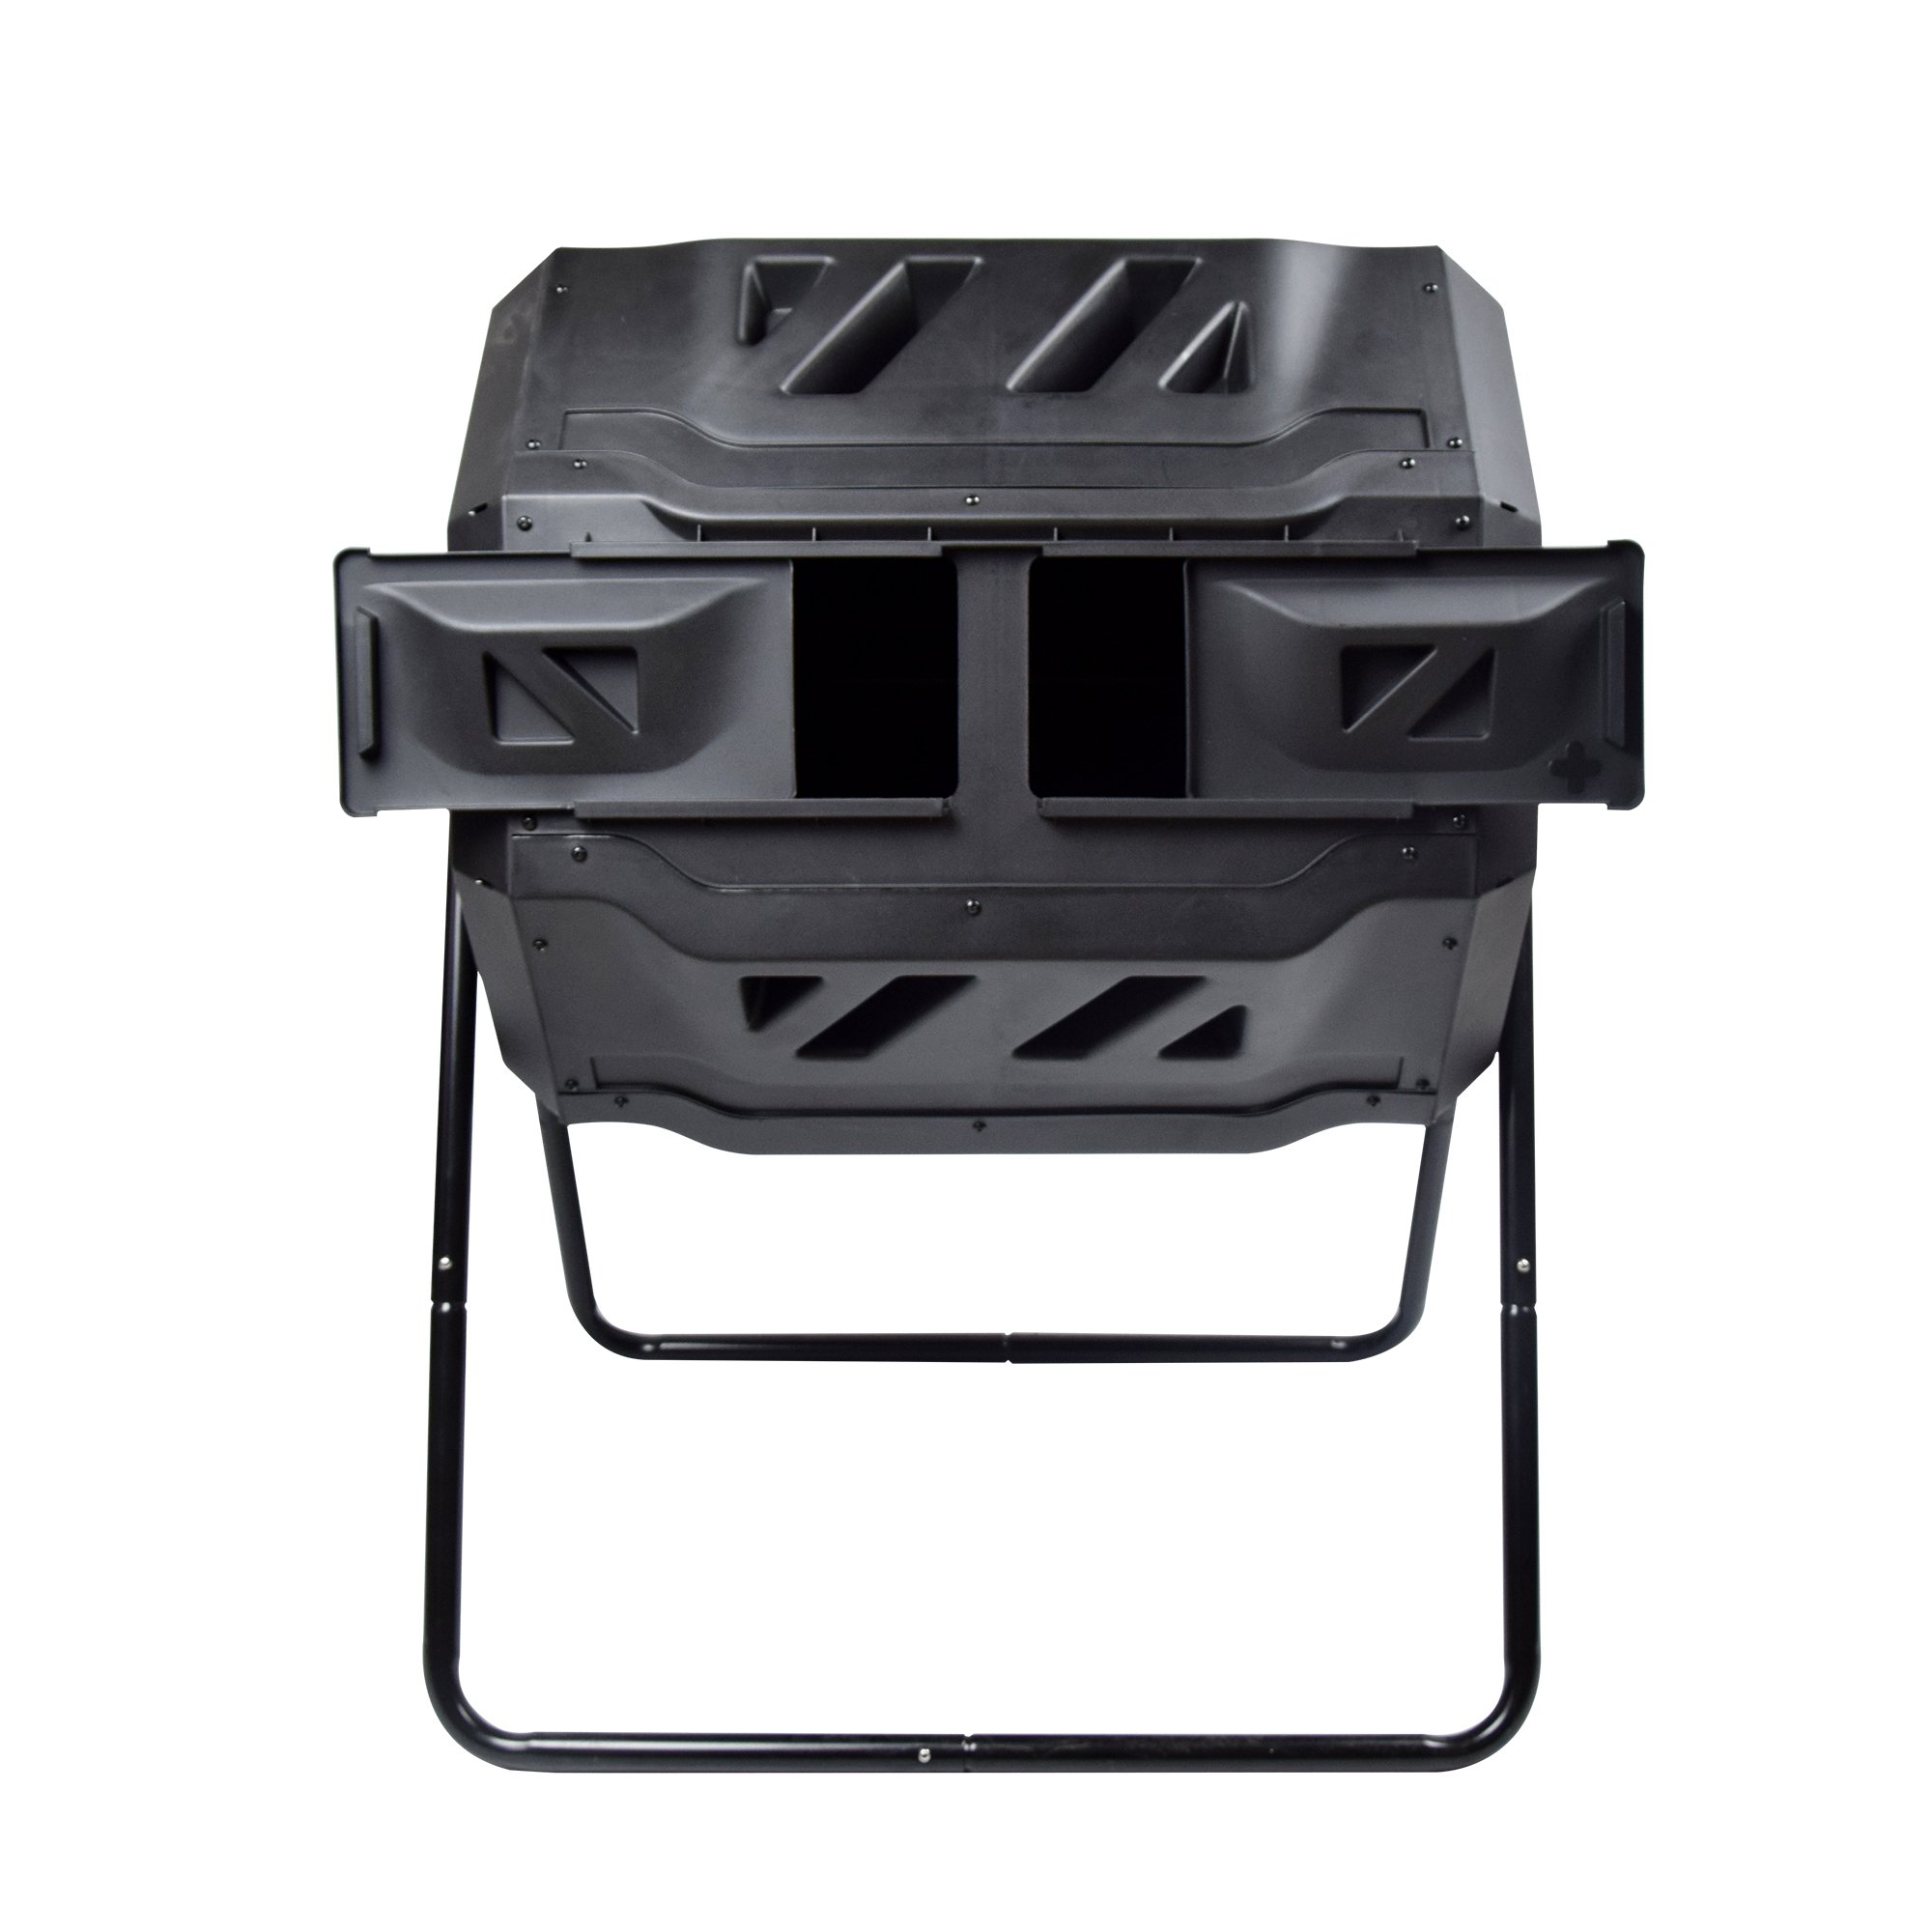 Rotary Garden Tumbler Composter-Easy to turn Barrel, Space Efficient, Black Color, 160L / 37-gallon Capacity With 2 Compartments by Smarssen by Smarssen